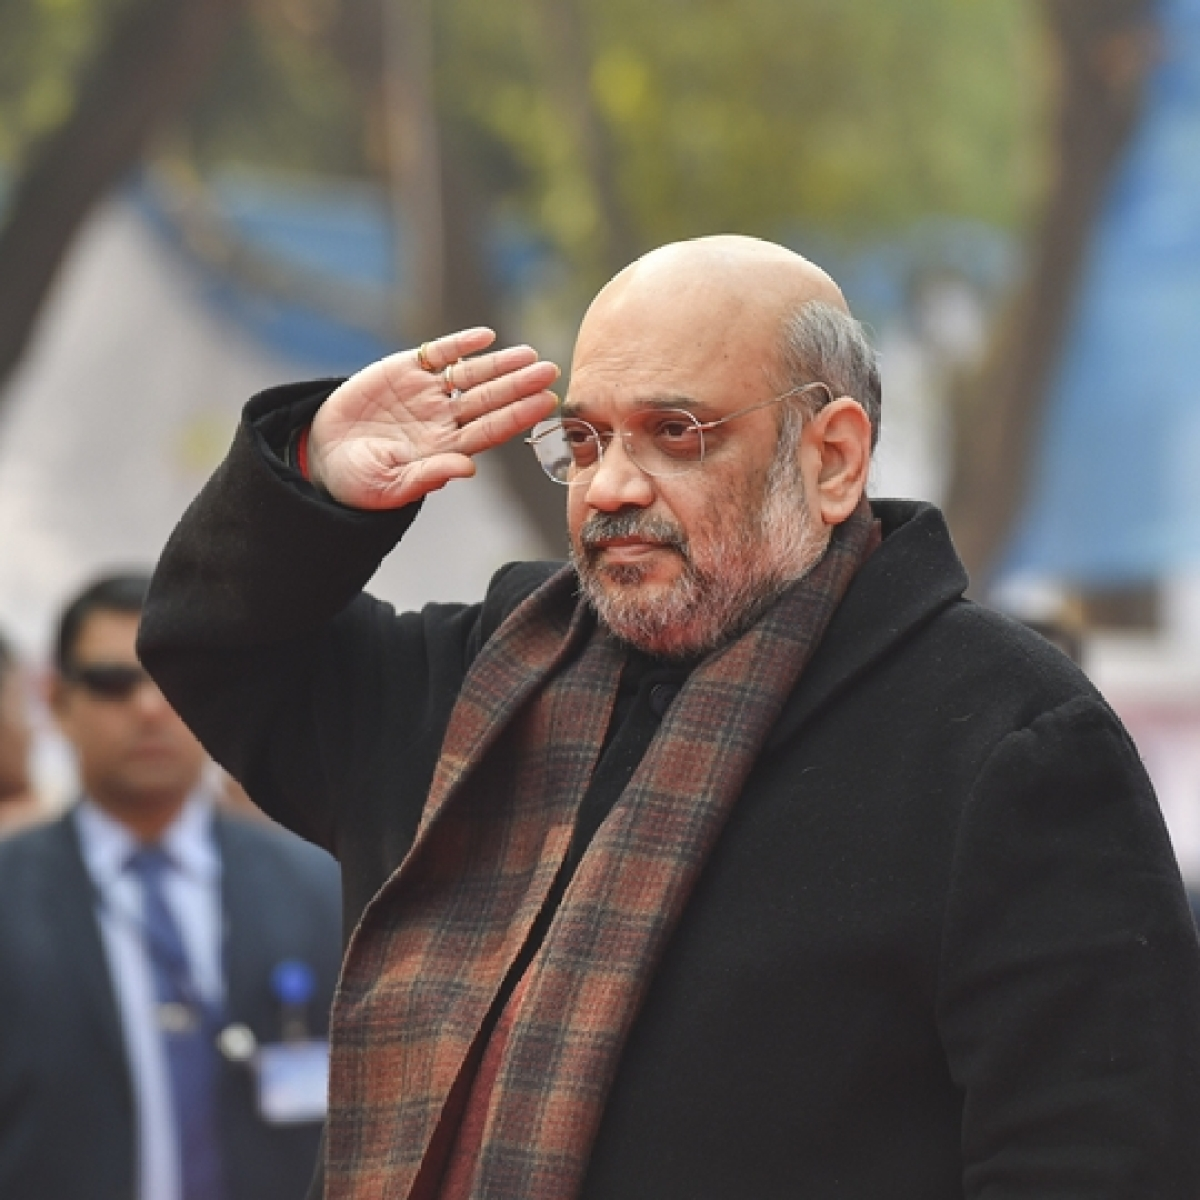 No one called ex-JK CMs 'anti-national', decision on their release by UT admin: Amit Shah